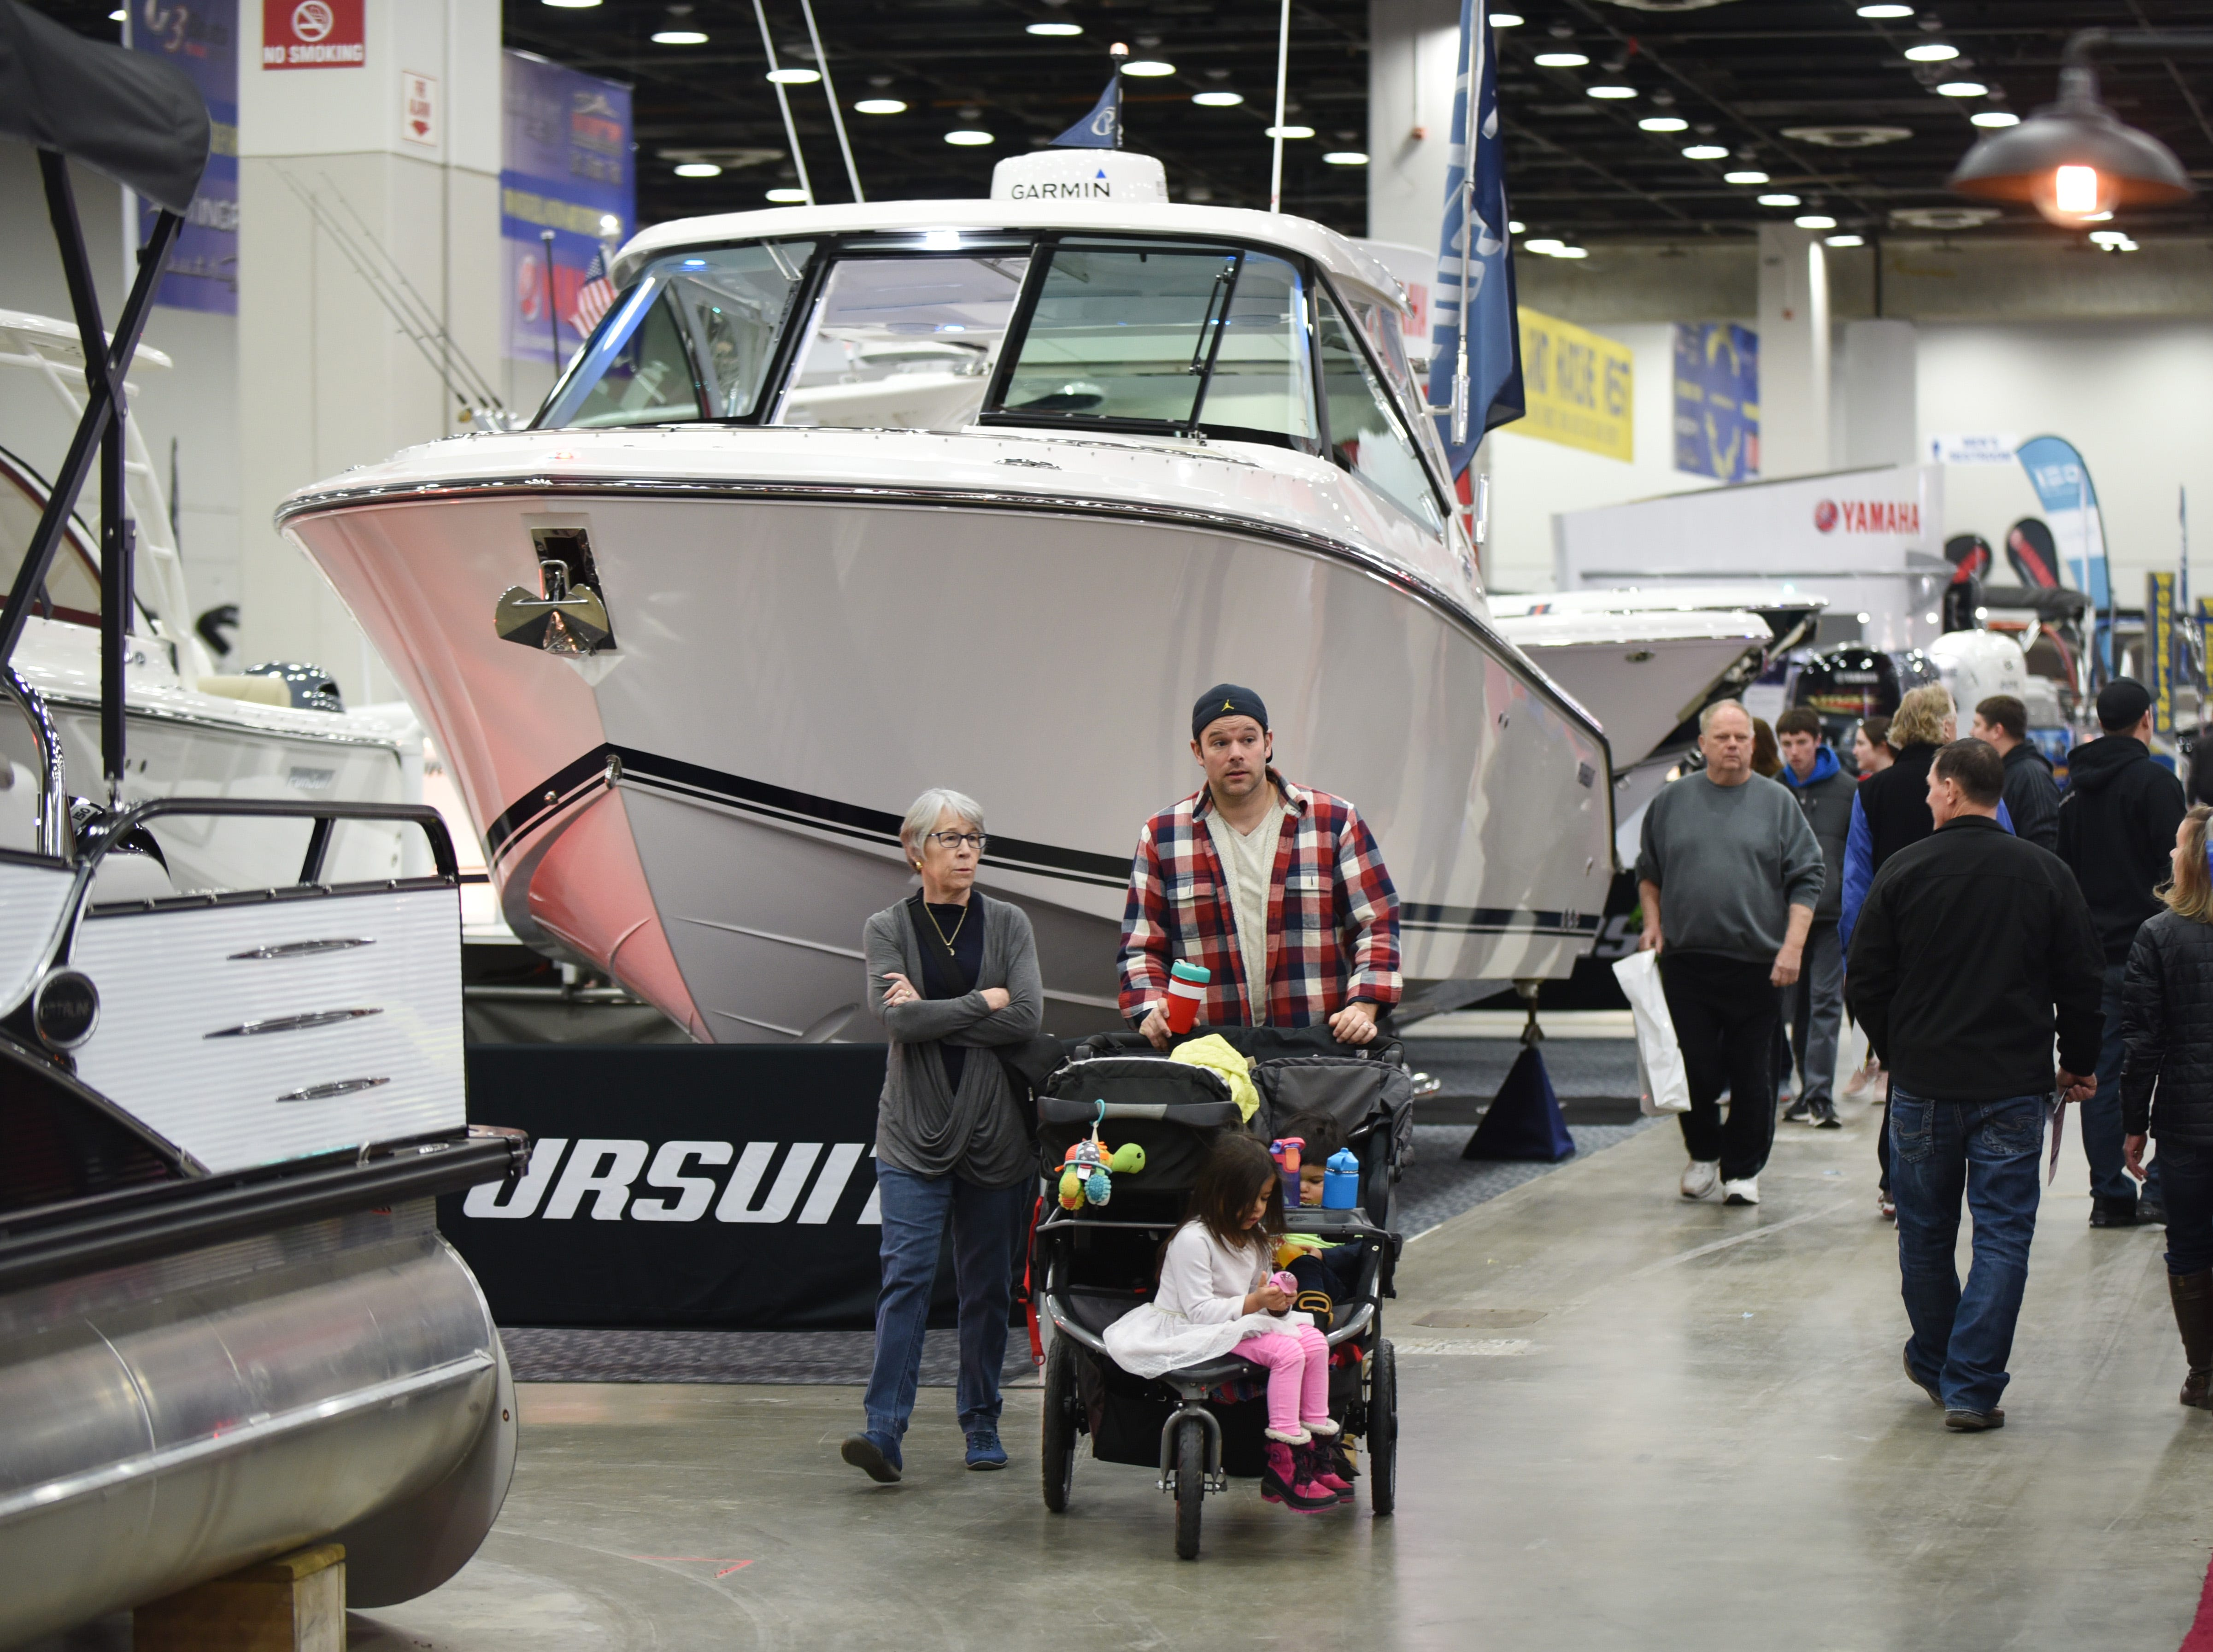 People walk passed a Pursuit DC 325 Dual Console boat from Lands End Marina, Harrison Township, at the Detroit Boat Show.